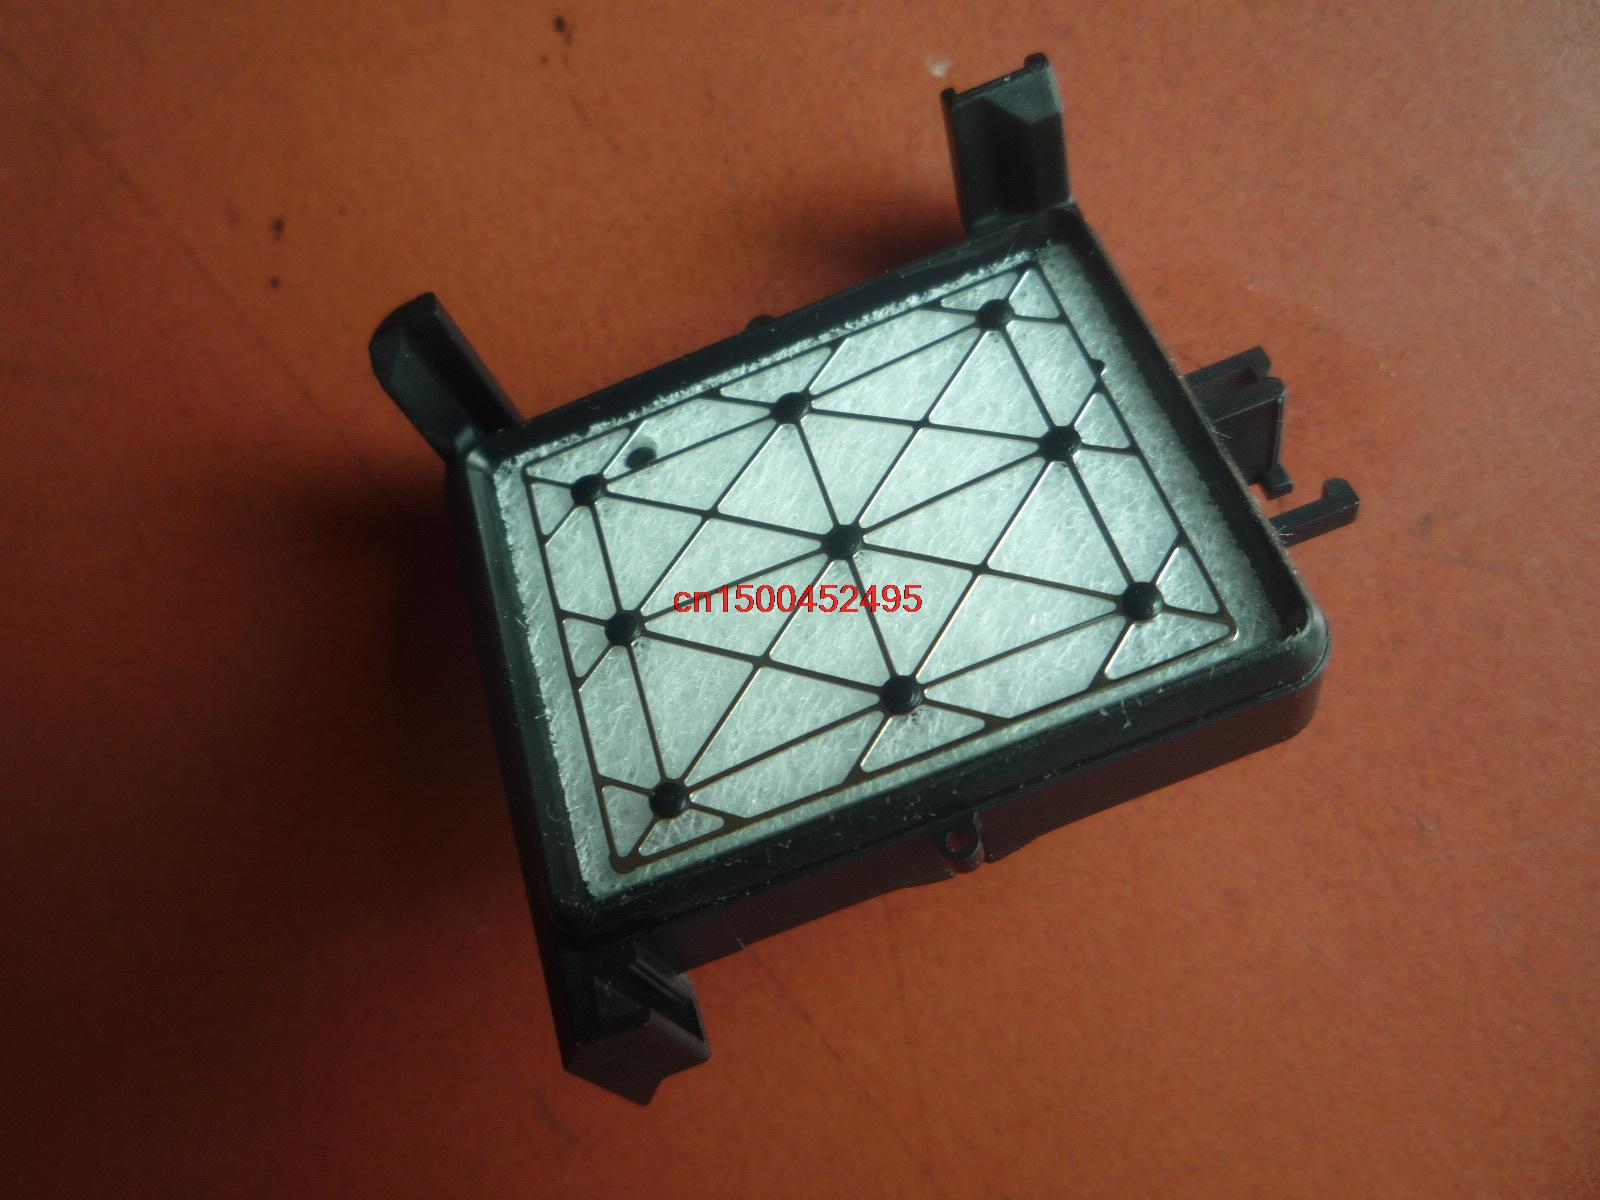 New and original capping station for EPSON PRO-4450 4800 4880C PX6250 6550 4880 PUMP CAP PAD ASSY ASP CAP ASSY new and original for epson pro 4880 4880c 4400 4450 7600 9600 7400 4880 porous pad assy ink tray porous pad ink